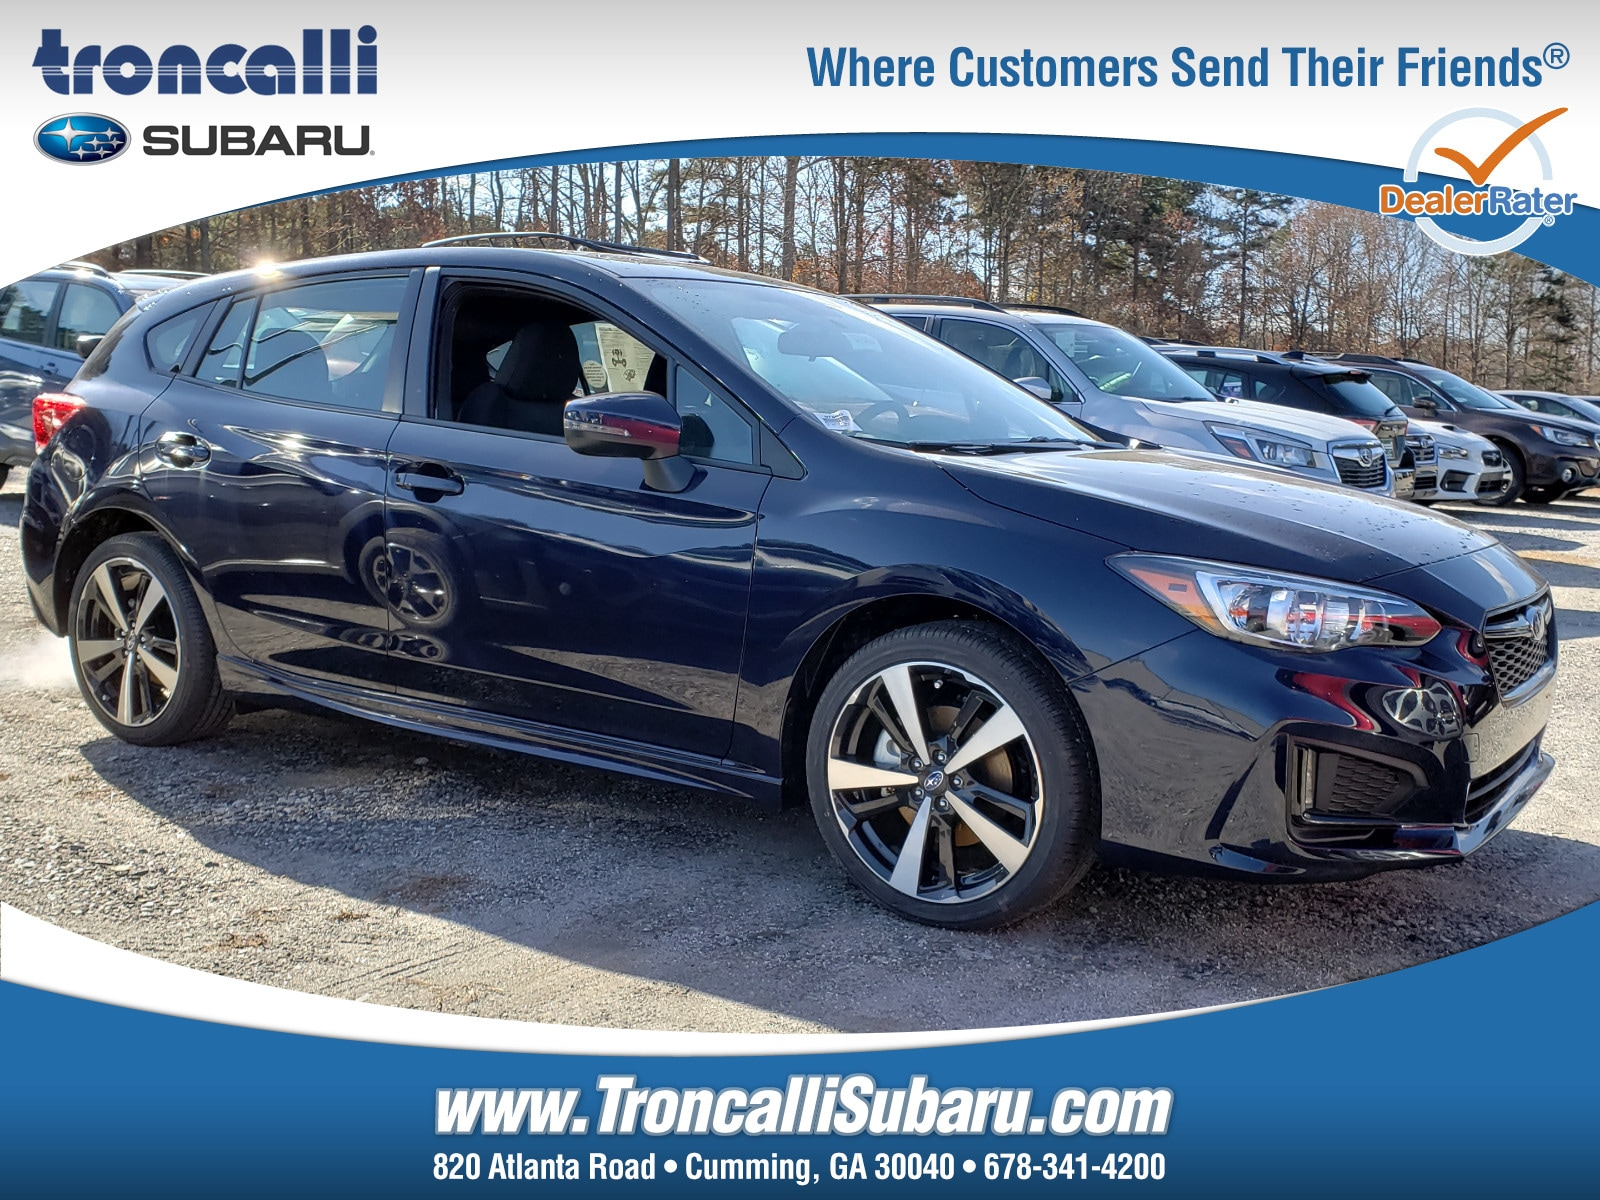 New 2019 Subaru Impreza 2.0i Sport 5-door in Cumming GA